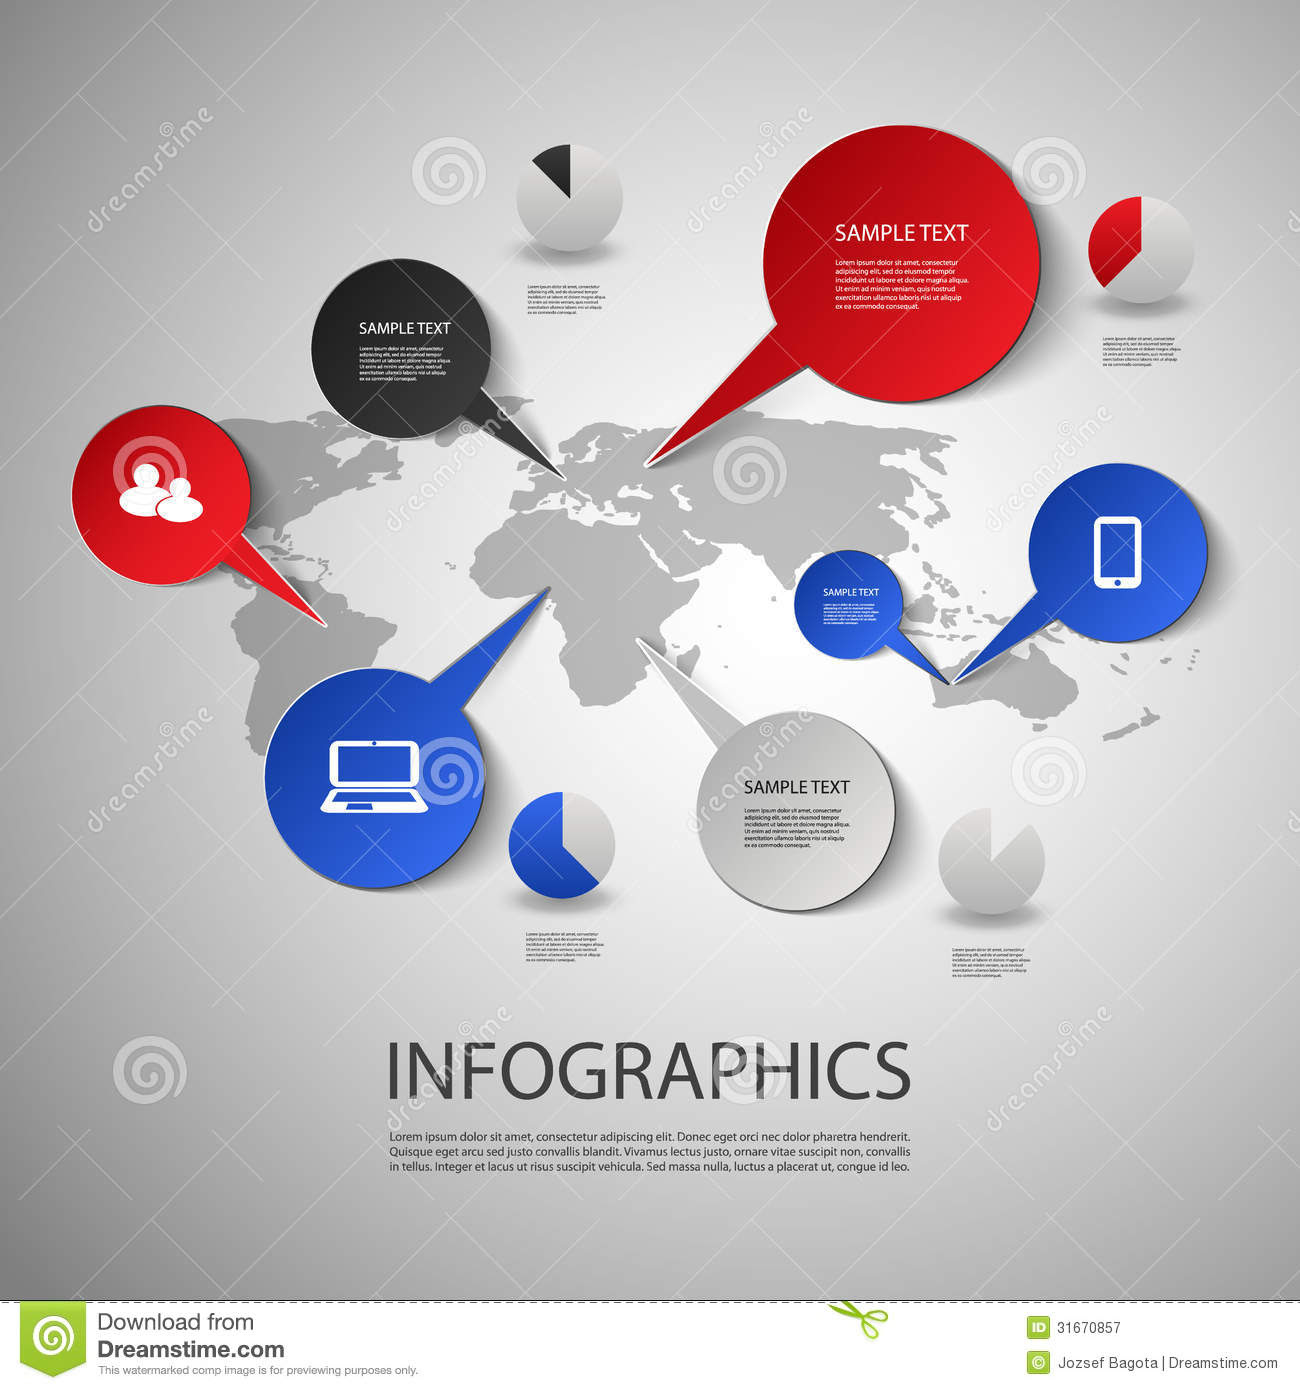 Infographic Cover Design Stock Photo - Image: 31127500